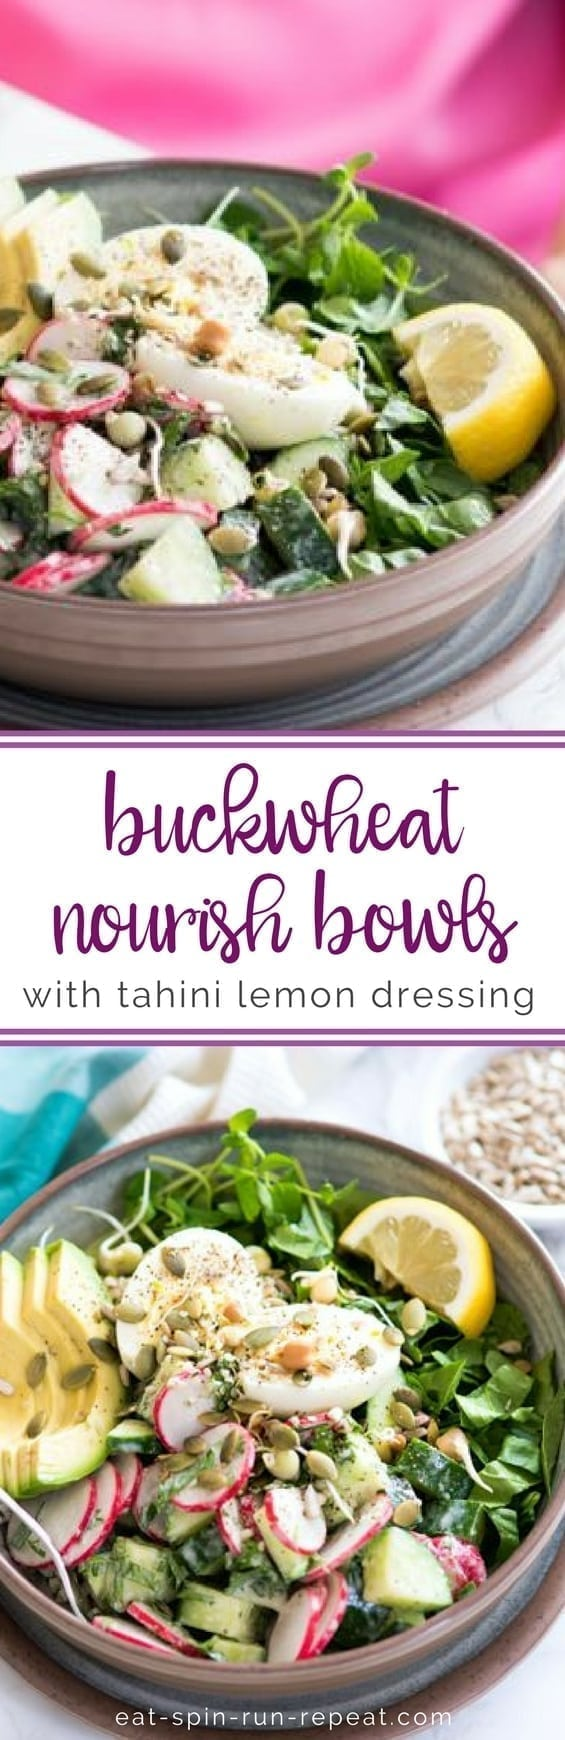 Gluten-Free Buckwheat Nourish Bowls with Tahini Lemon Dressing | a delish vegetarian, low sugar, make-ahead-safe lunch! | Eat Spin Run Repeat